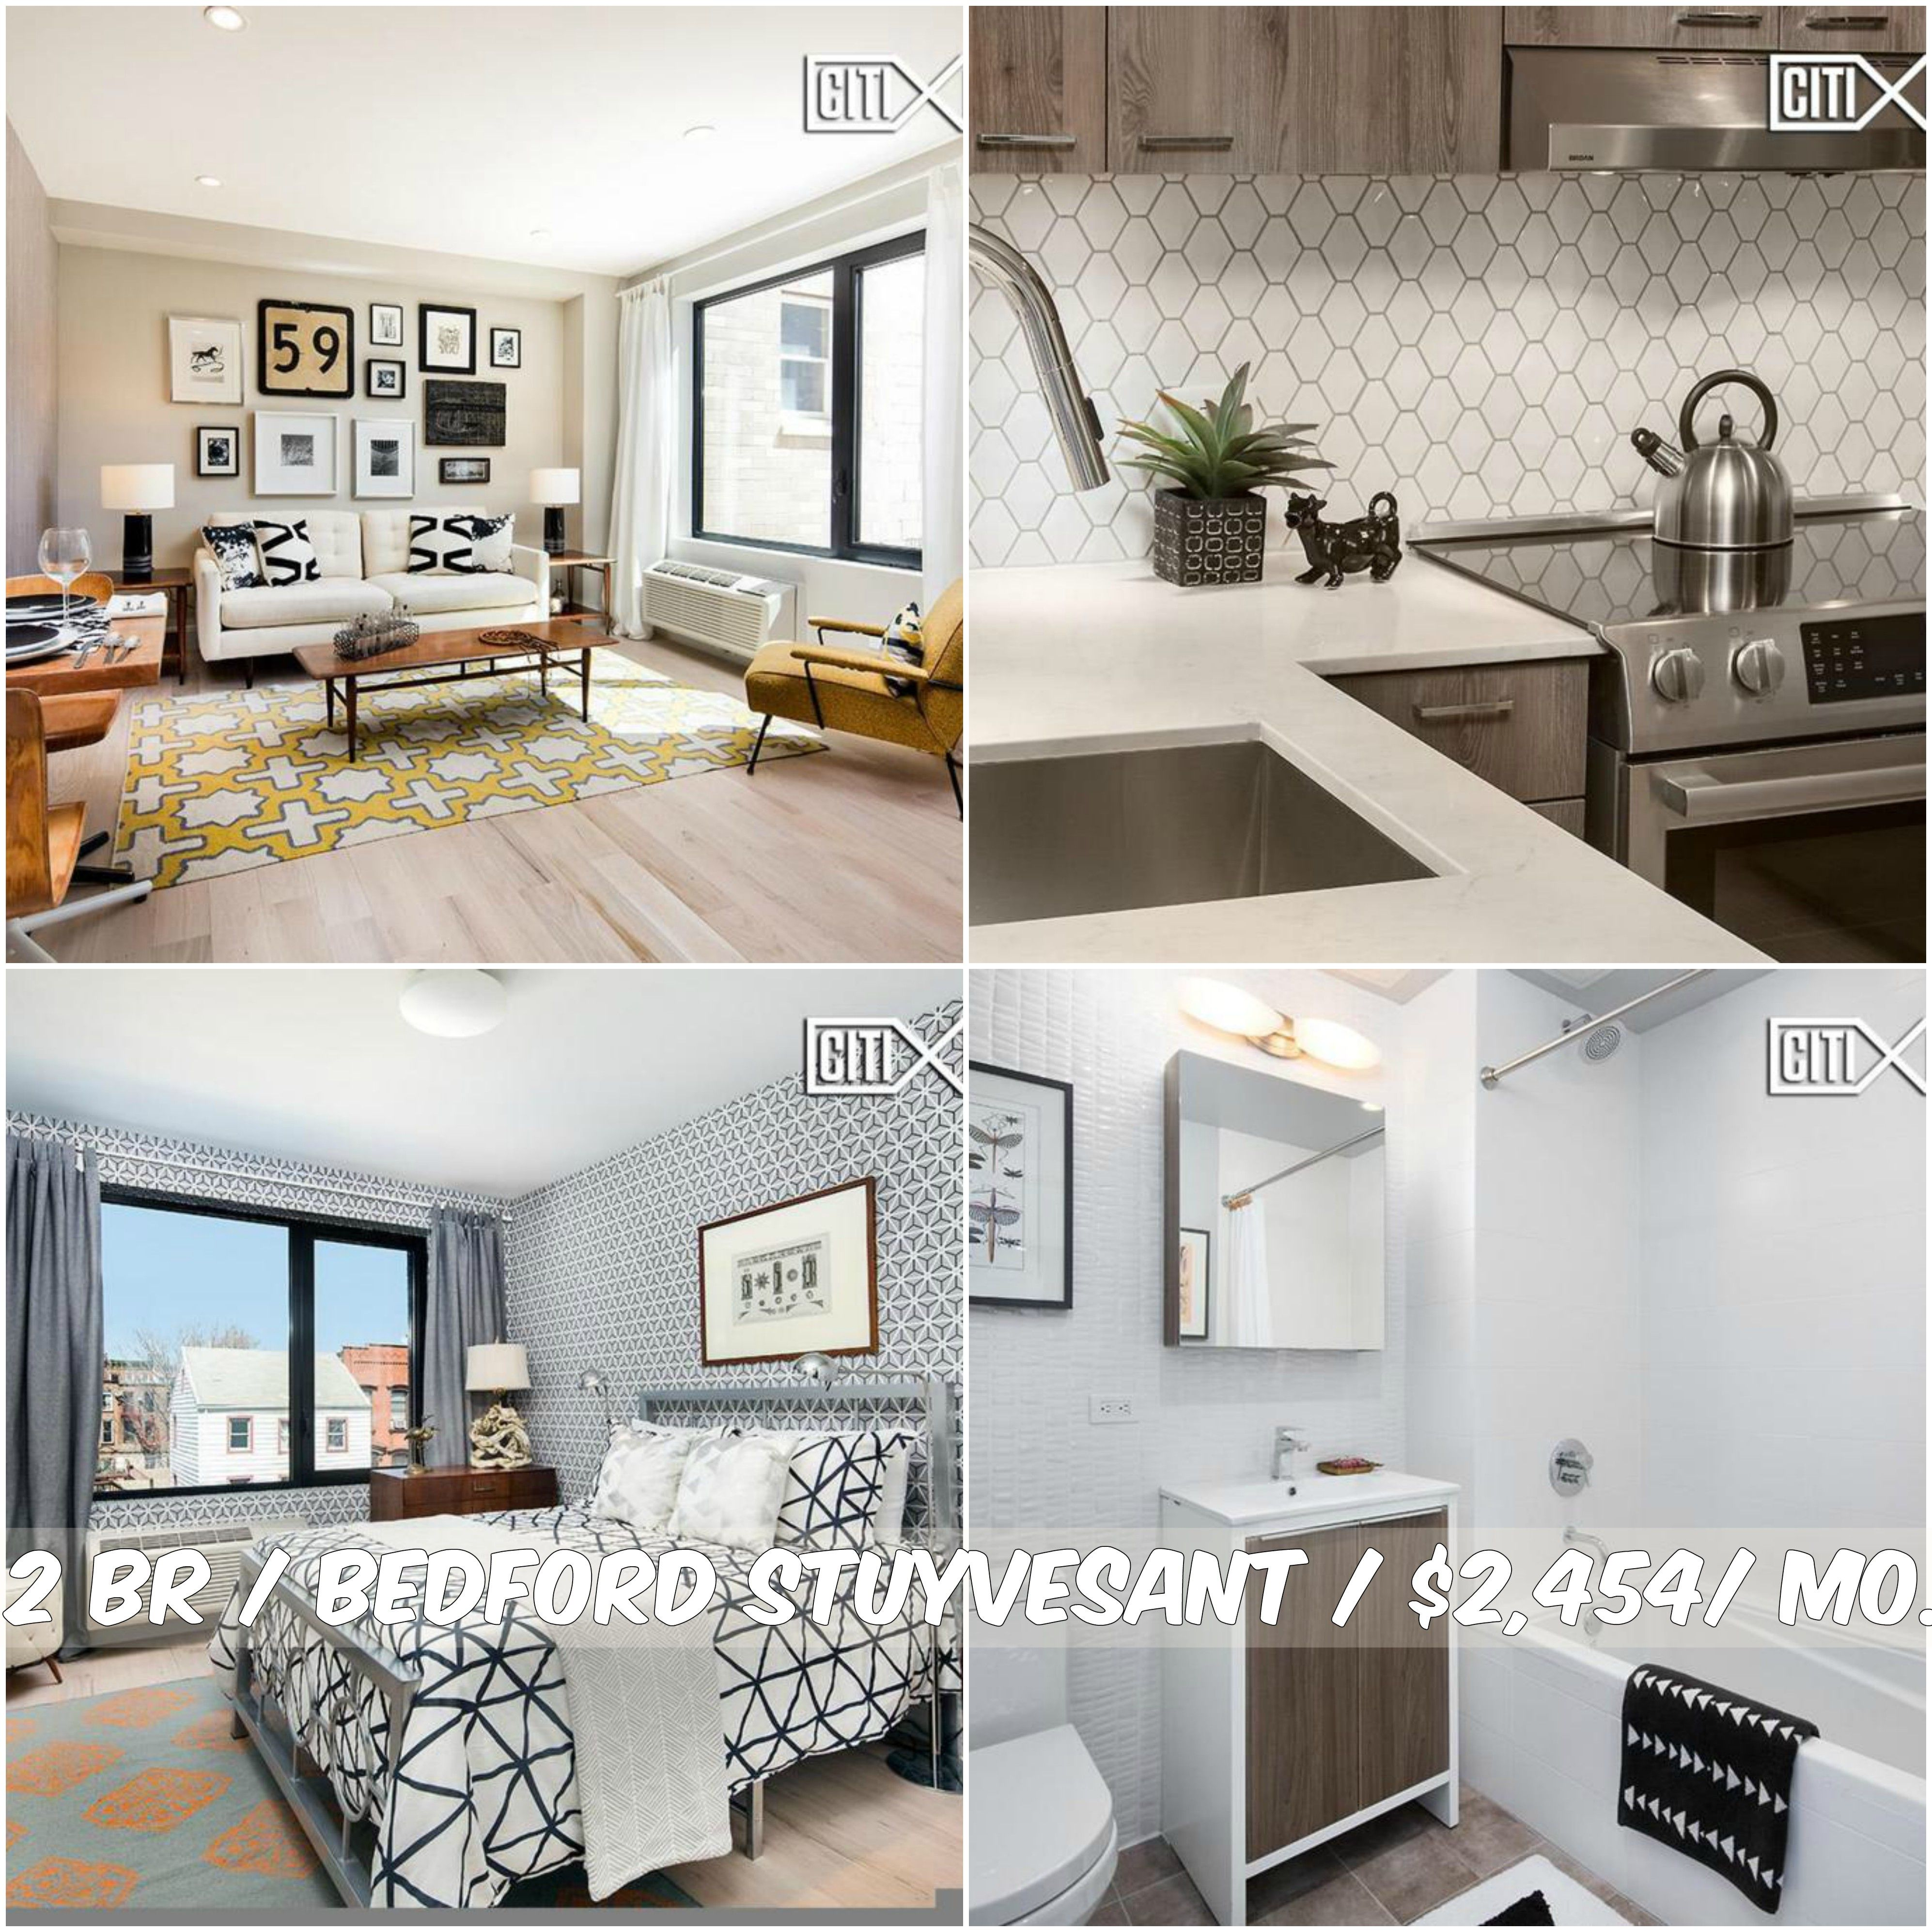 2 BR apt for rent in Bedford Stuyvesant $2,454/mo.Garage, Bicycle Room, Roof Deck, Outdoor Space. Contact us for details. Web ID:613474. #NYCApartments #MovingToNYC #NYCrentals #ApartmentHunting #Moving #NYC #NoFeeApt